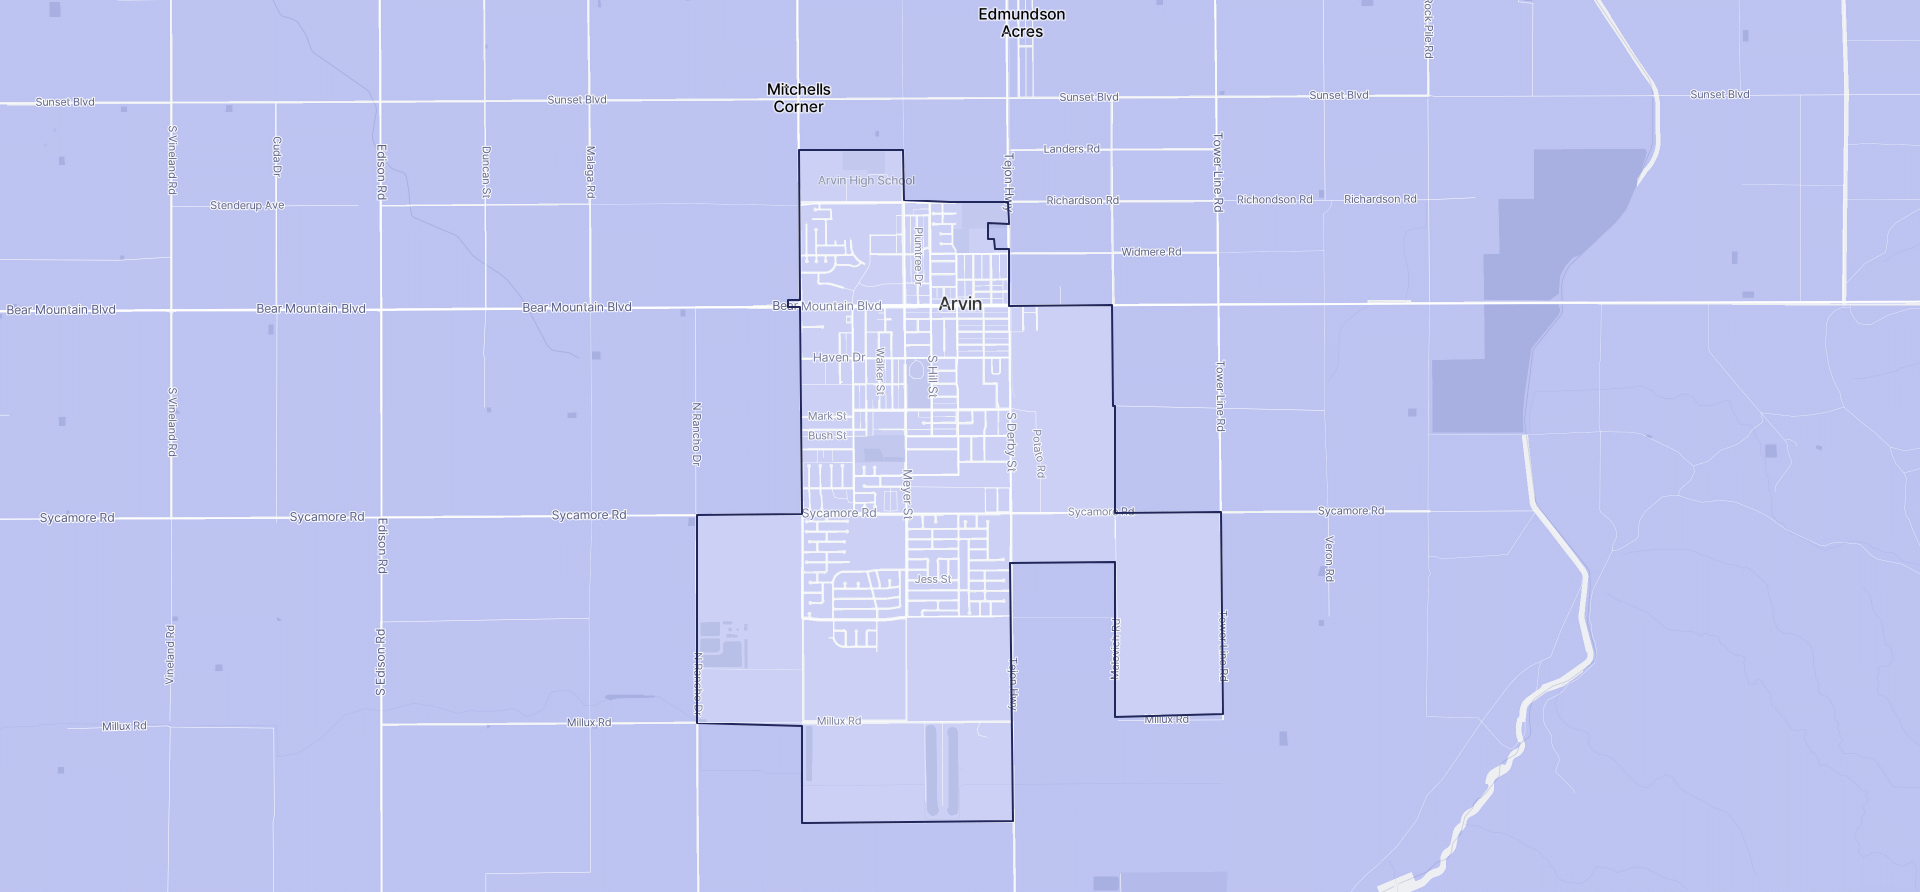 Image of Arvin boundaries on a map.